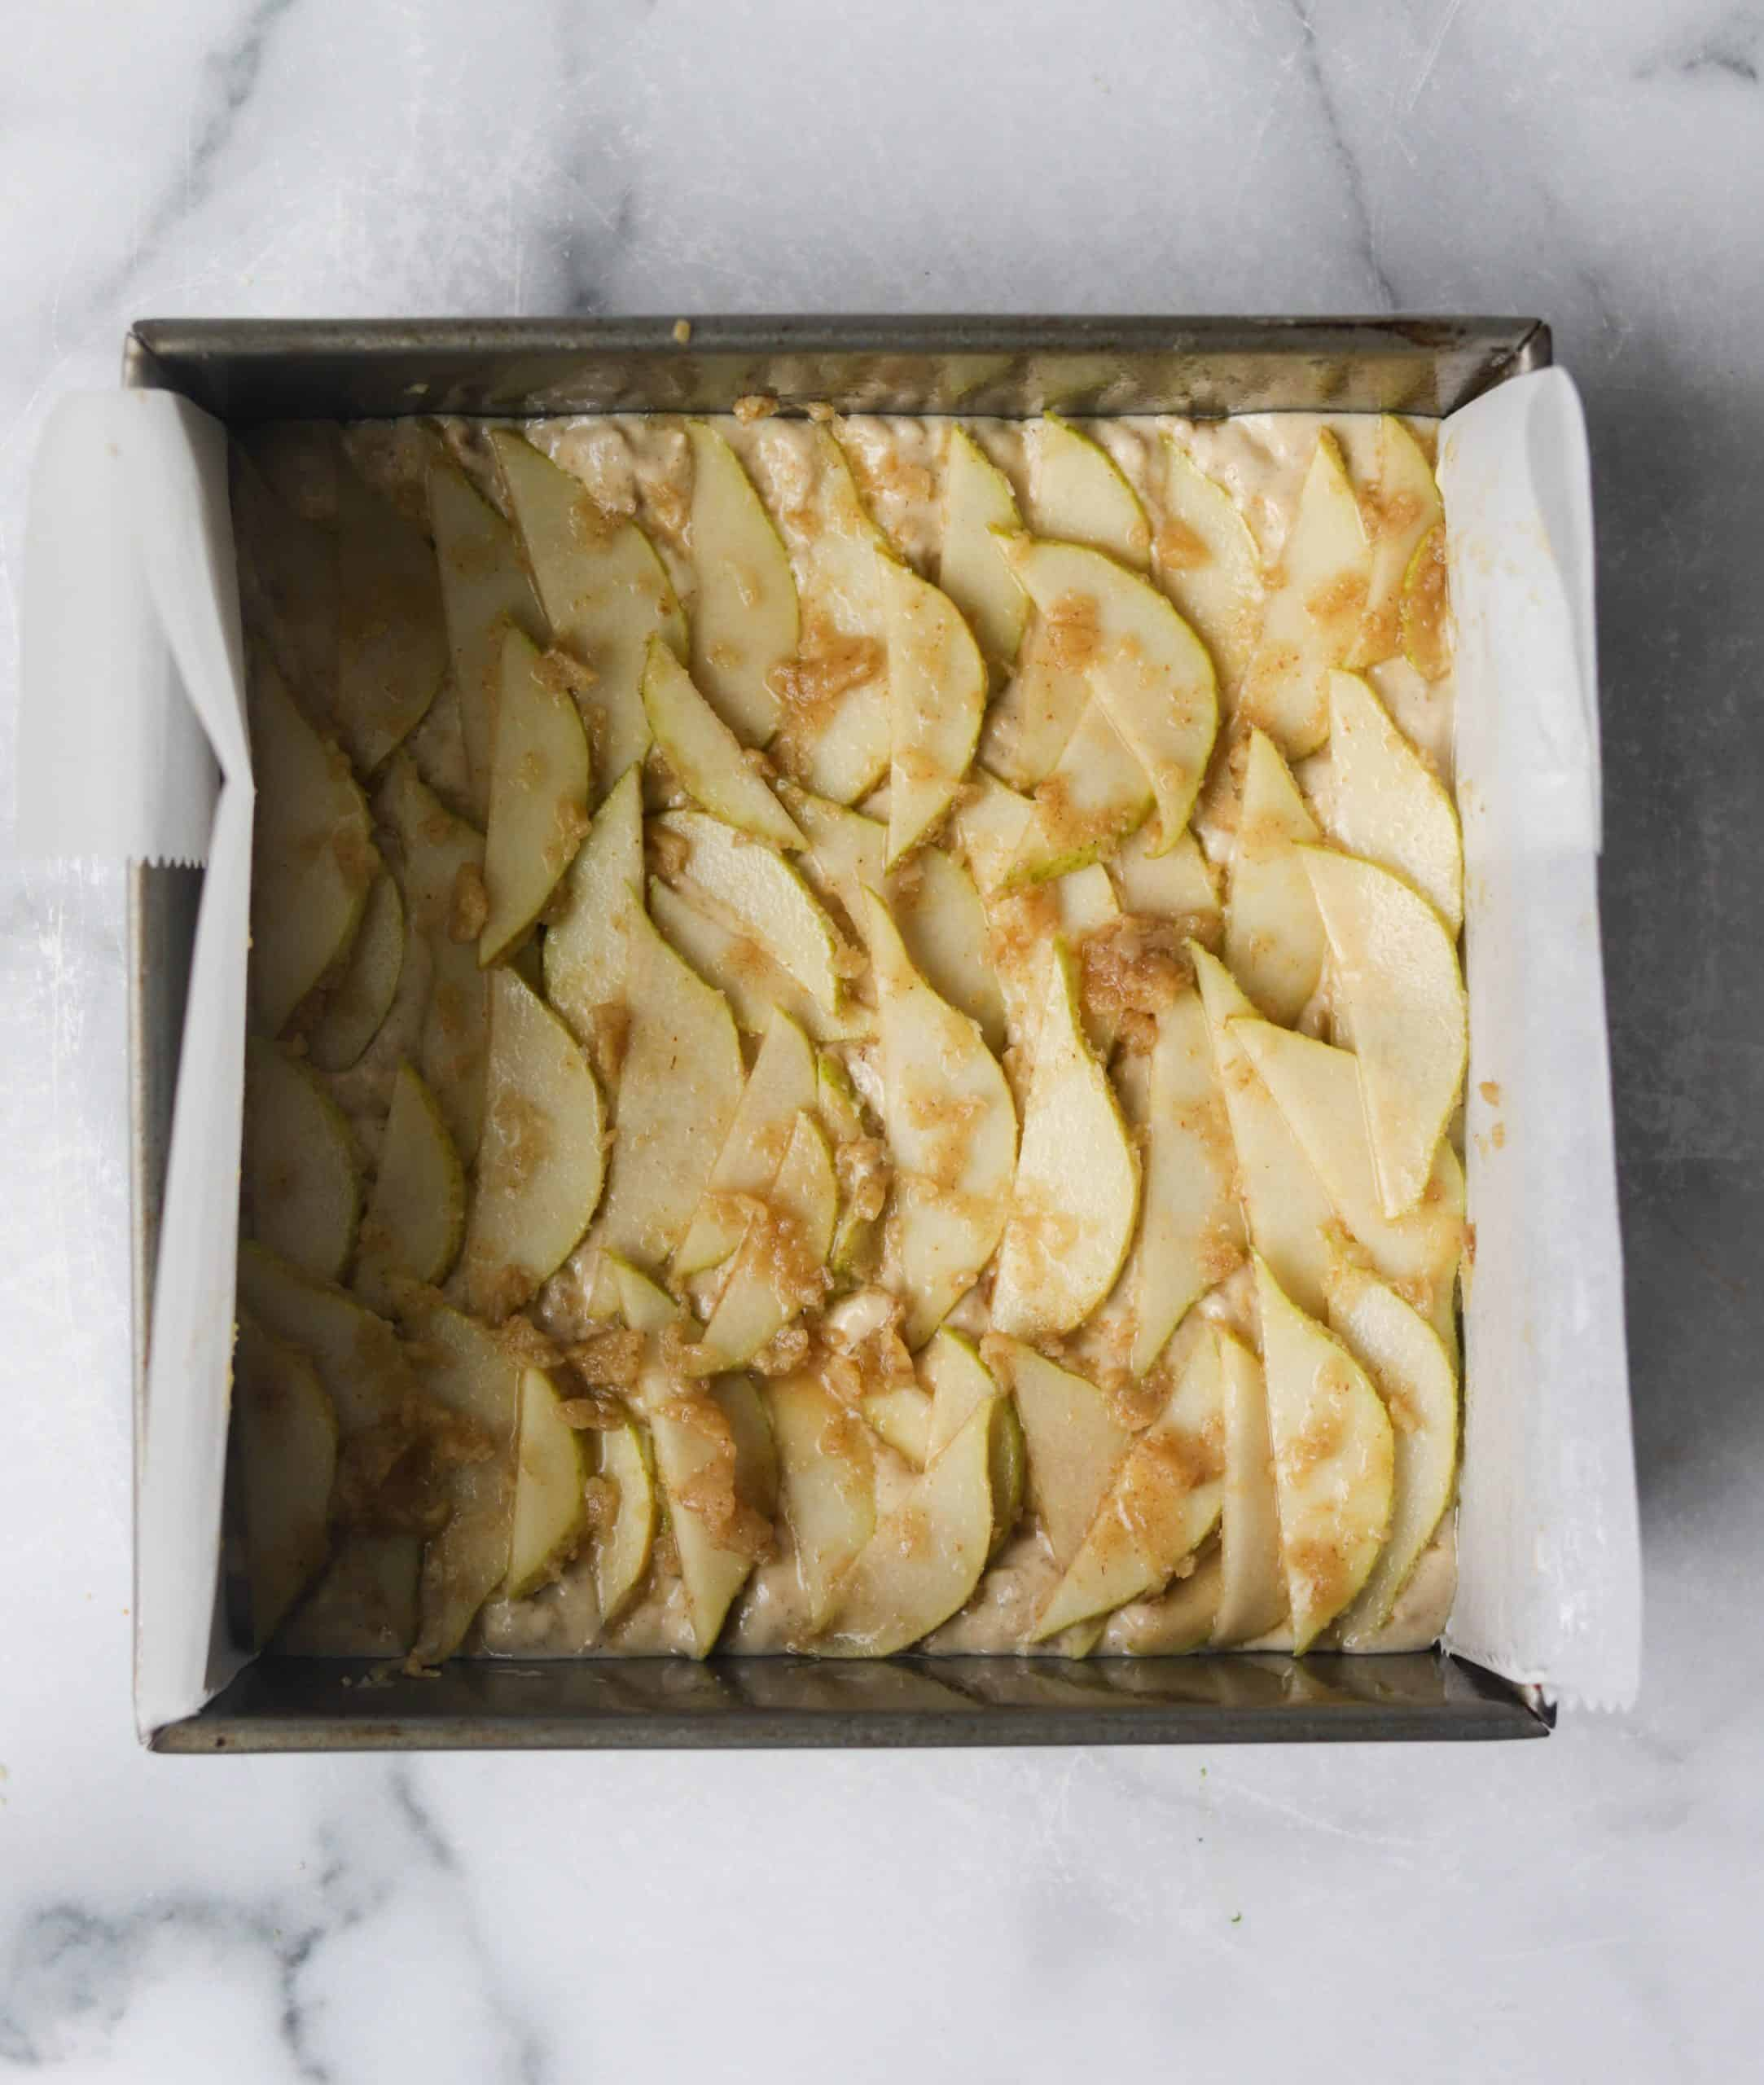 A cake pan filled with sliced glazed pears.